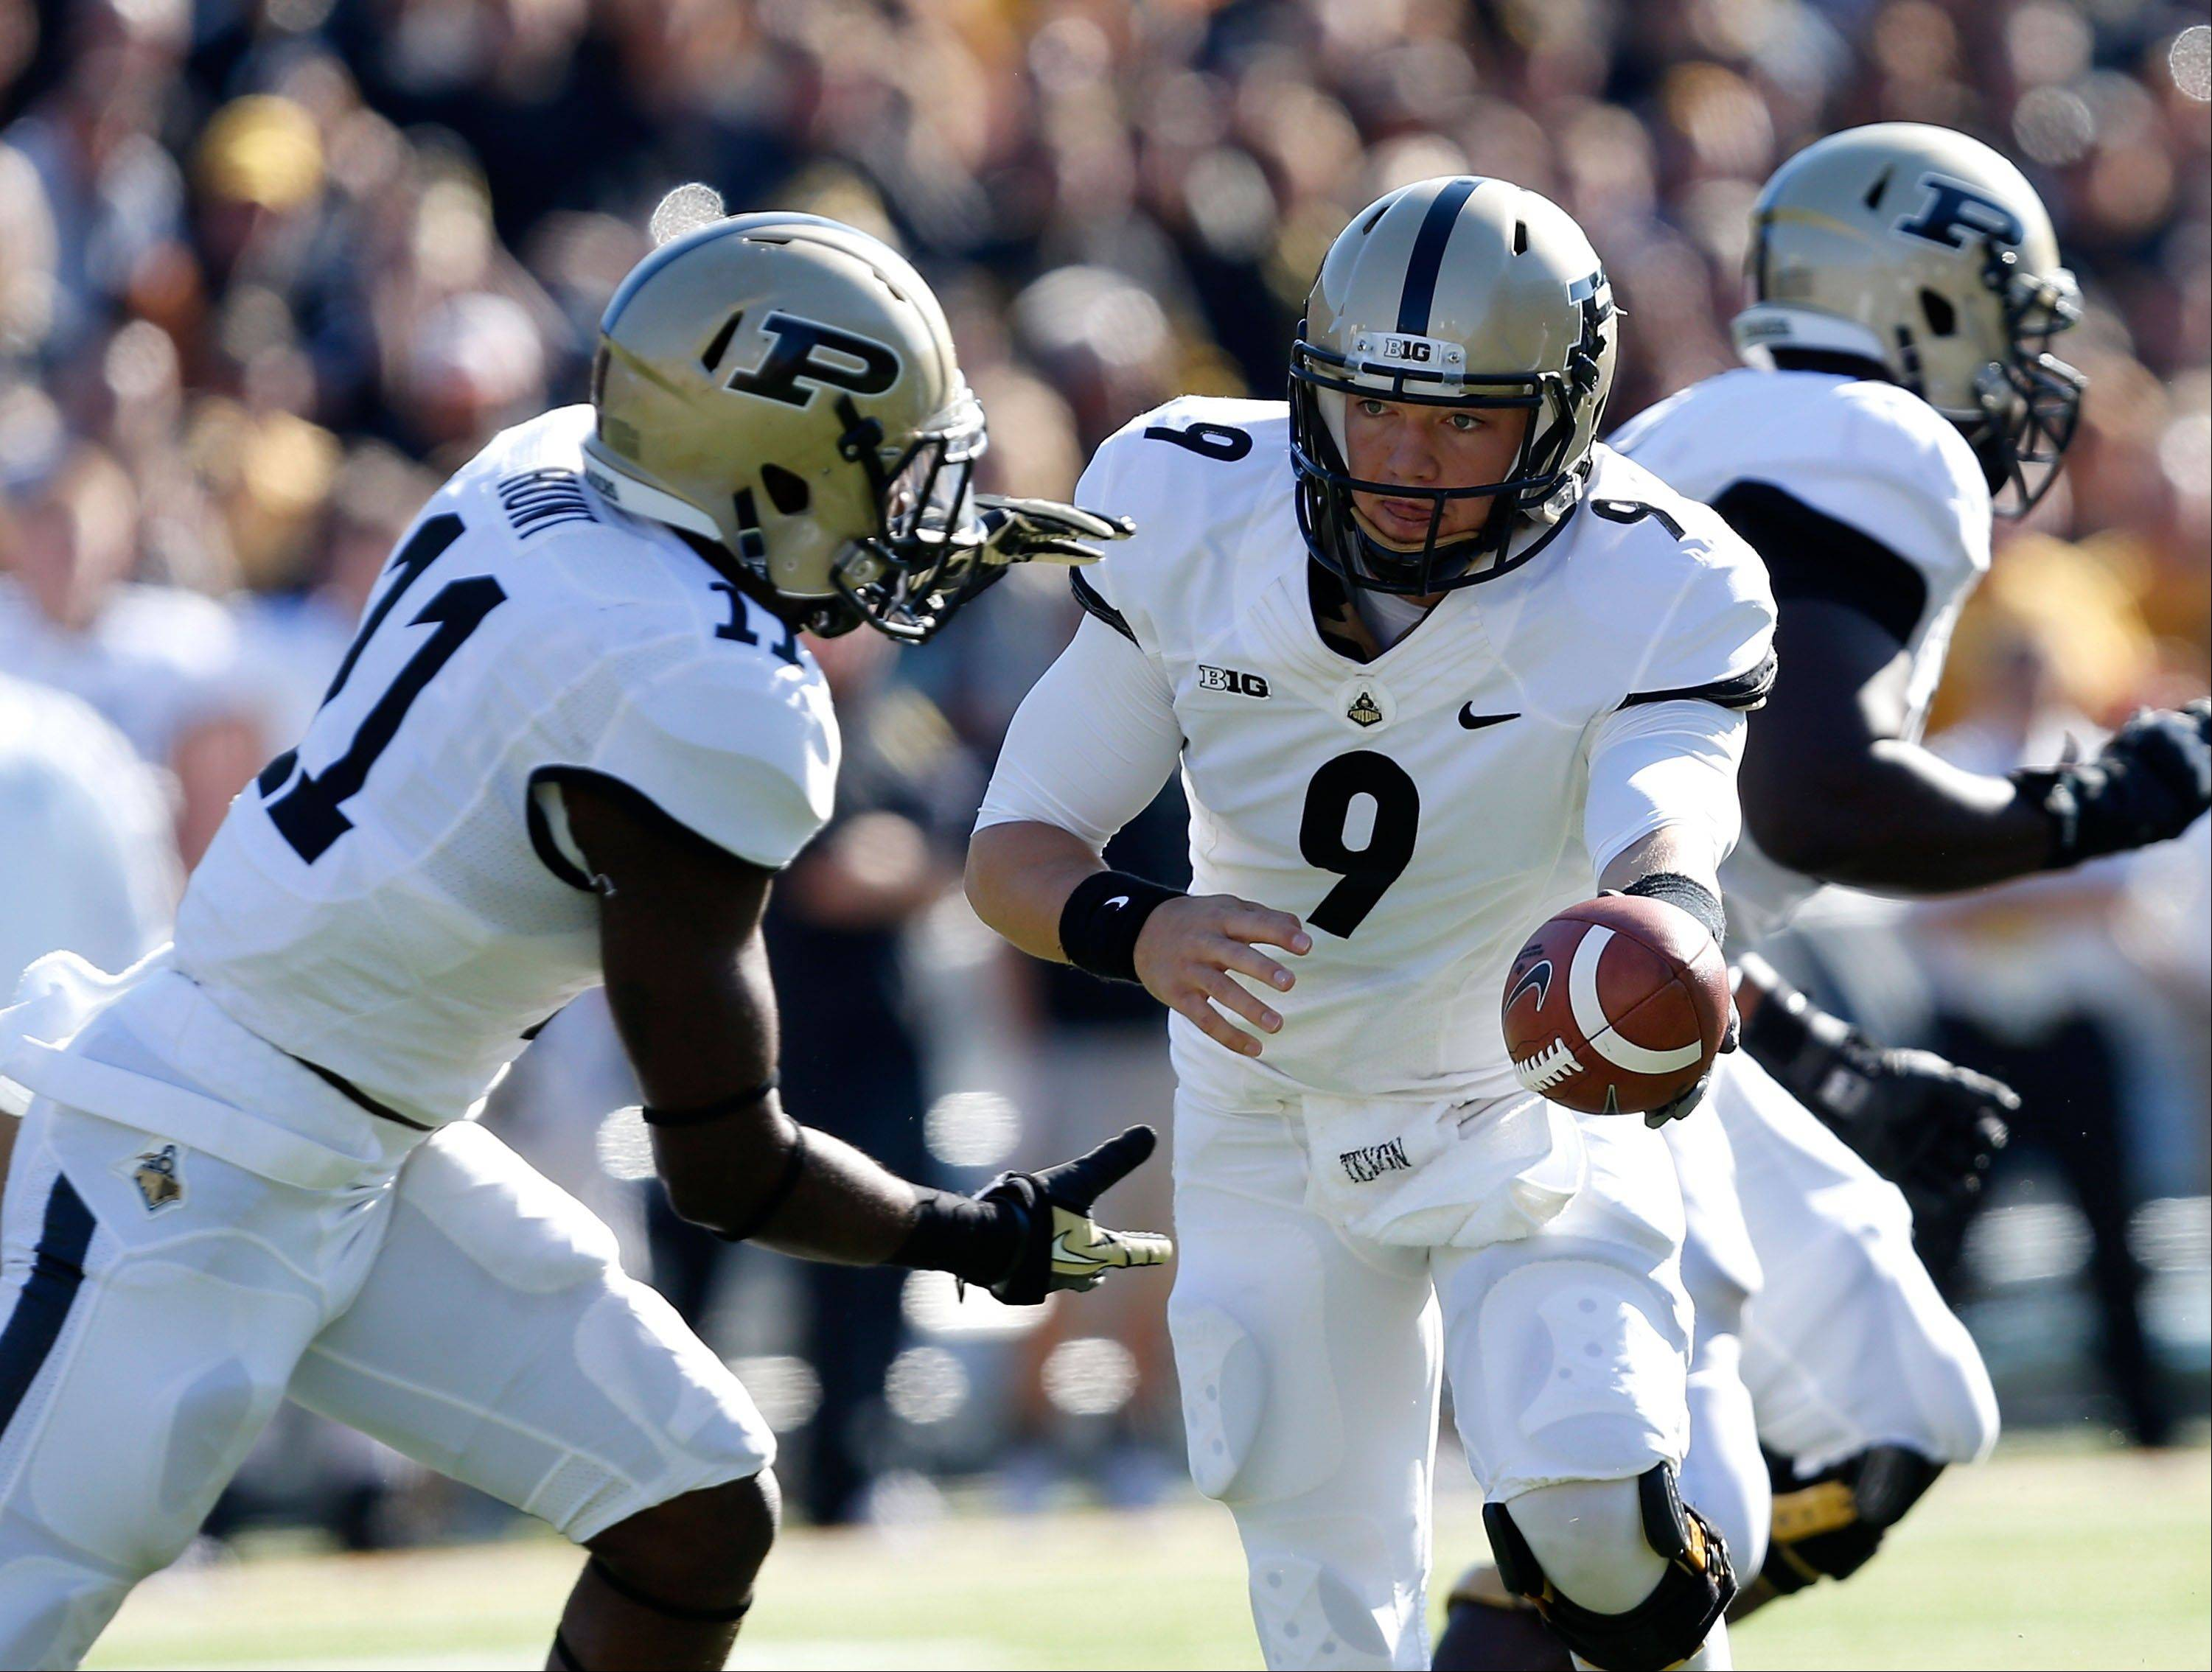 Purdue quarterback Robert Marve (9) hands the ball off to running back Akeem Hunt (11) during the first half against Iowa in an NCAA college football game Saturday, Nov. 10, 2012, in Iowa City, Iowa. Purdue won 27-24.